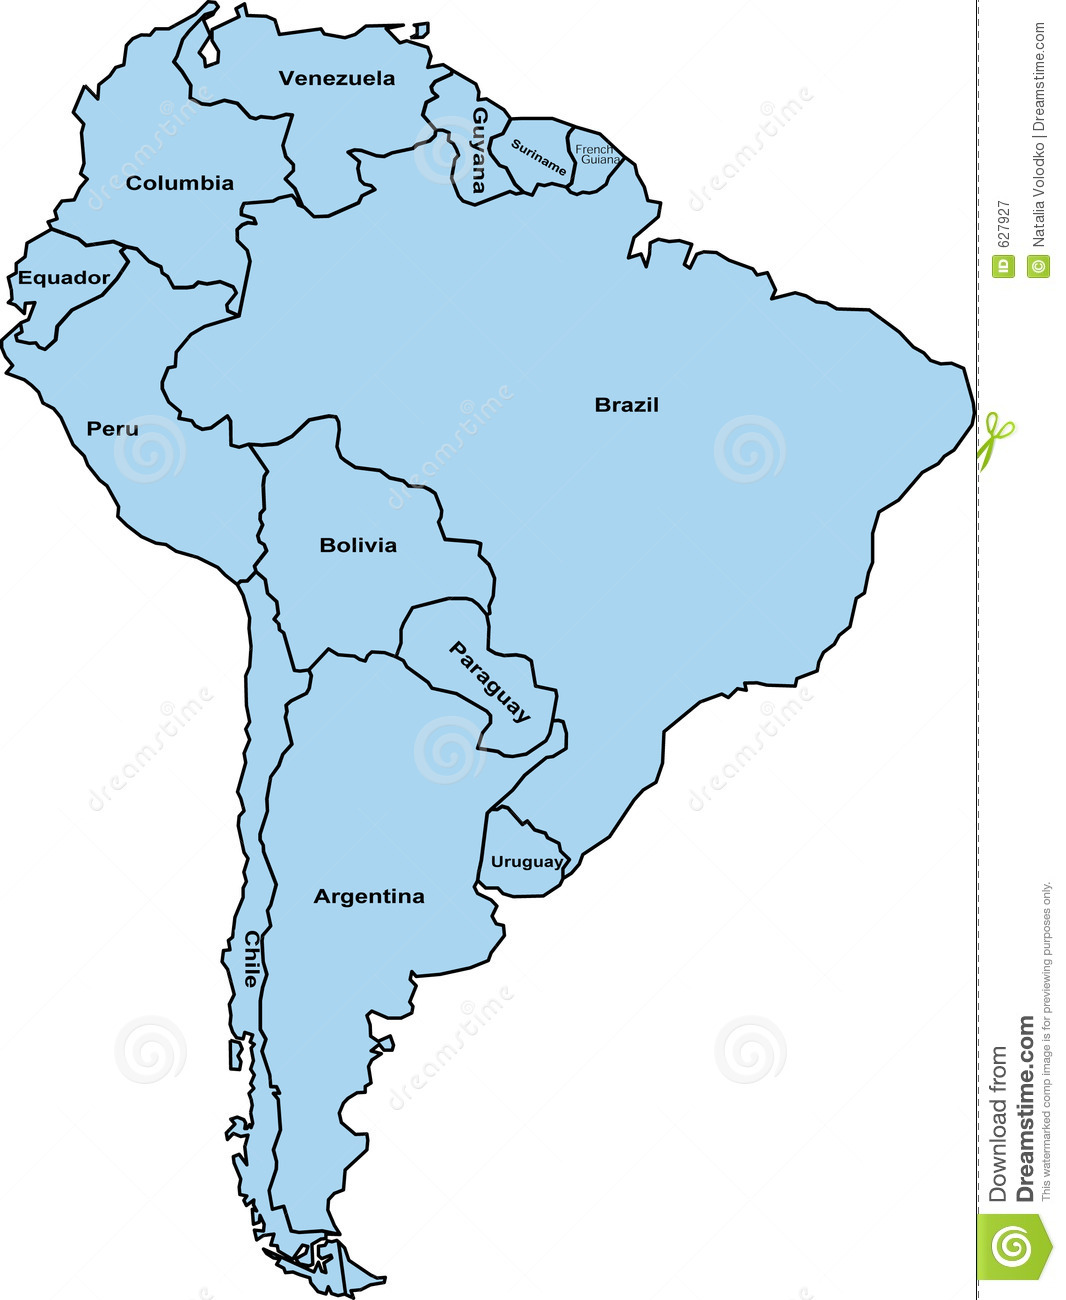 south america map clipart - photo #1